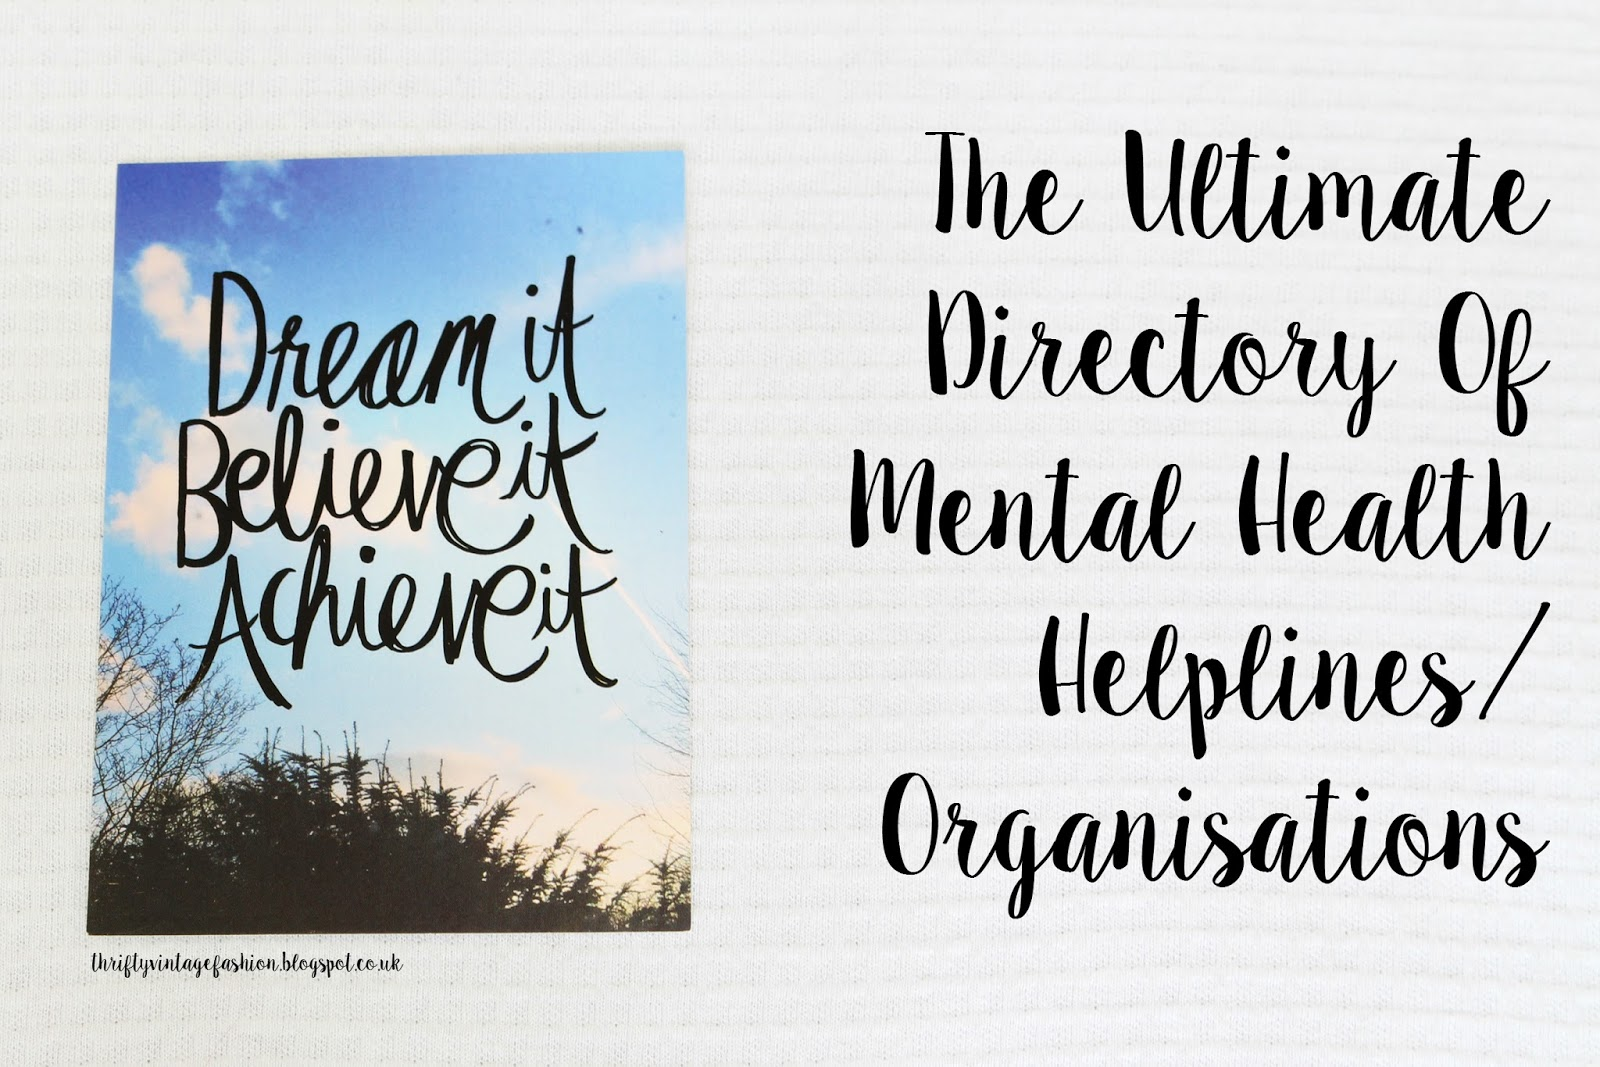 The Ultimate Directory Of Mental Health Helplines/ Organisations support mental illness depression OCD PSTD GAD